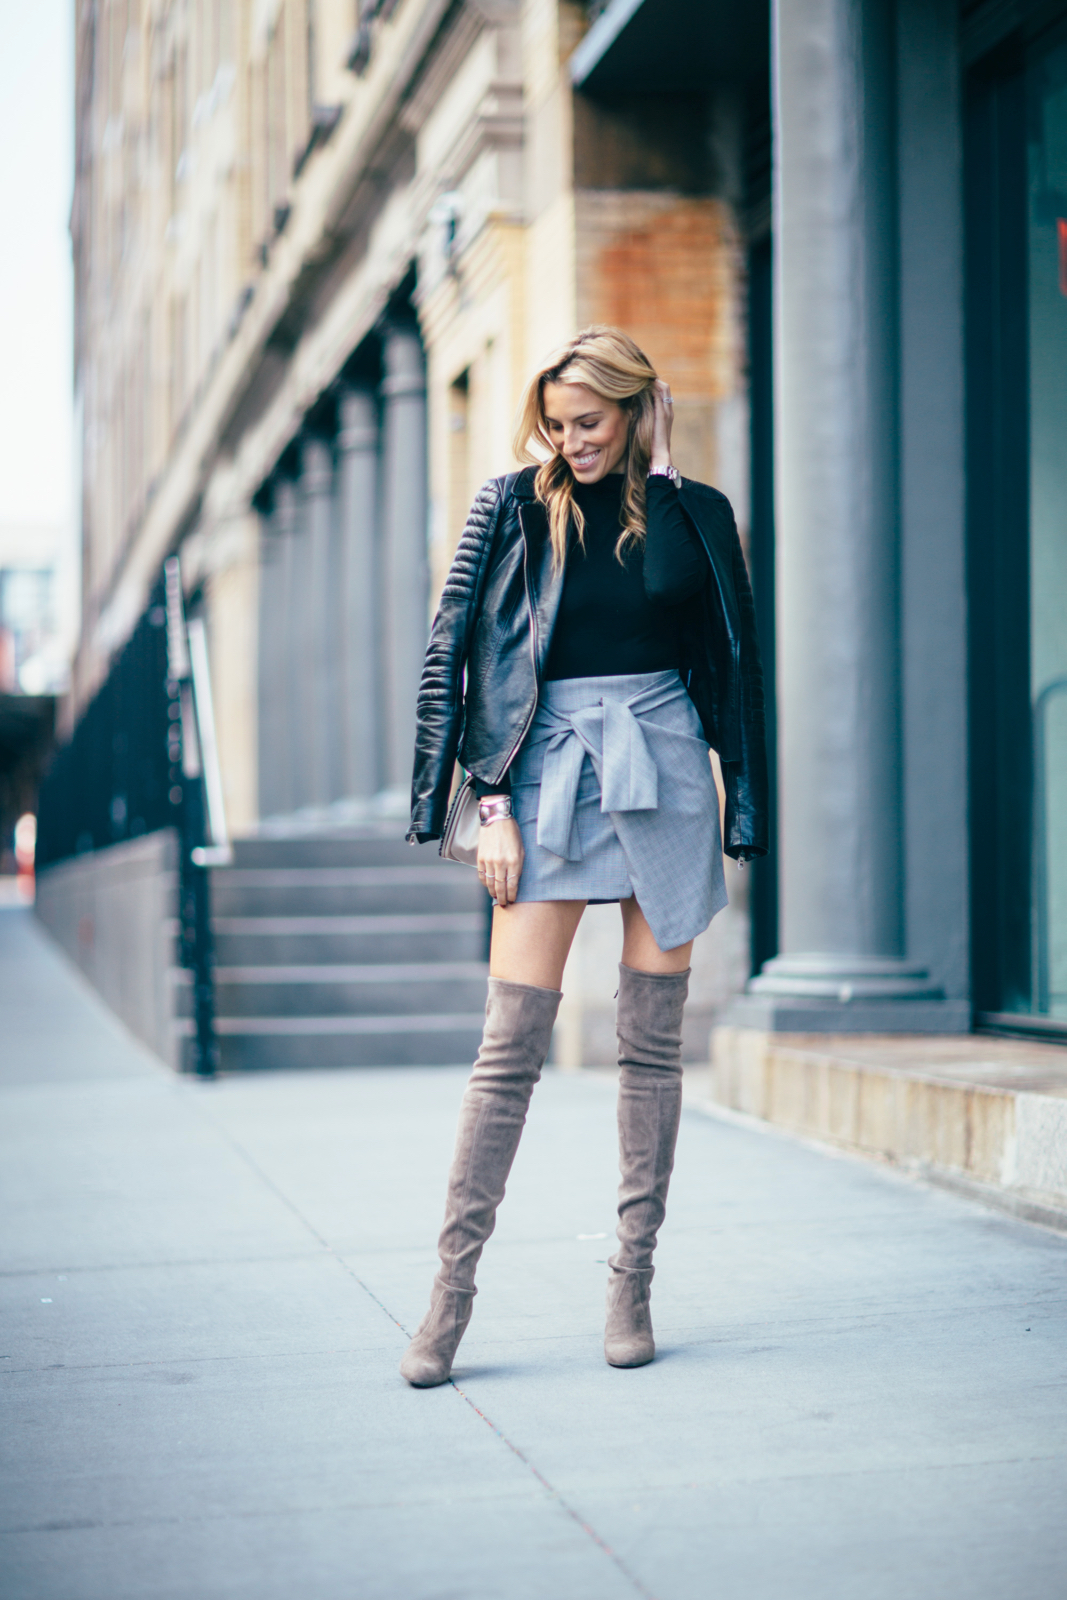 Stuart Weitzman over the knee boots, Chanel boy bag, Zara skirt, Moto skirt